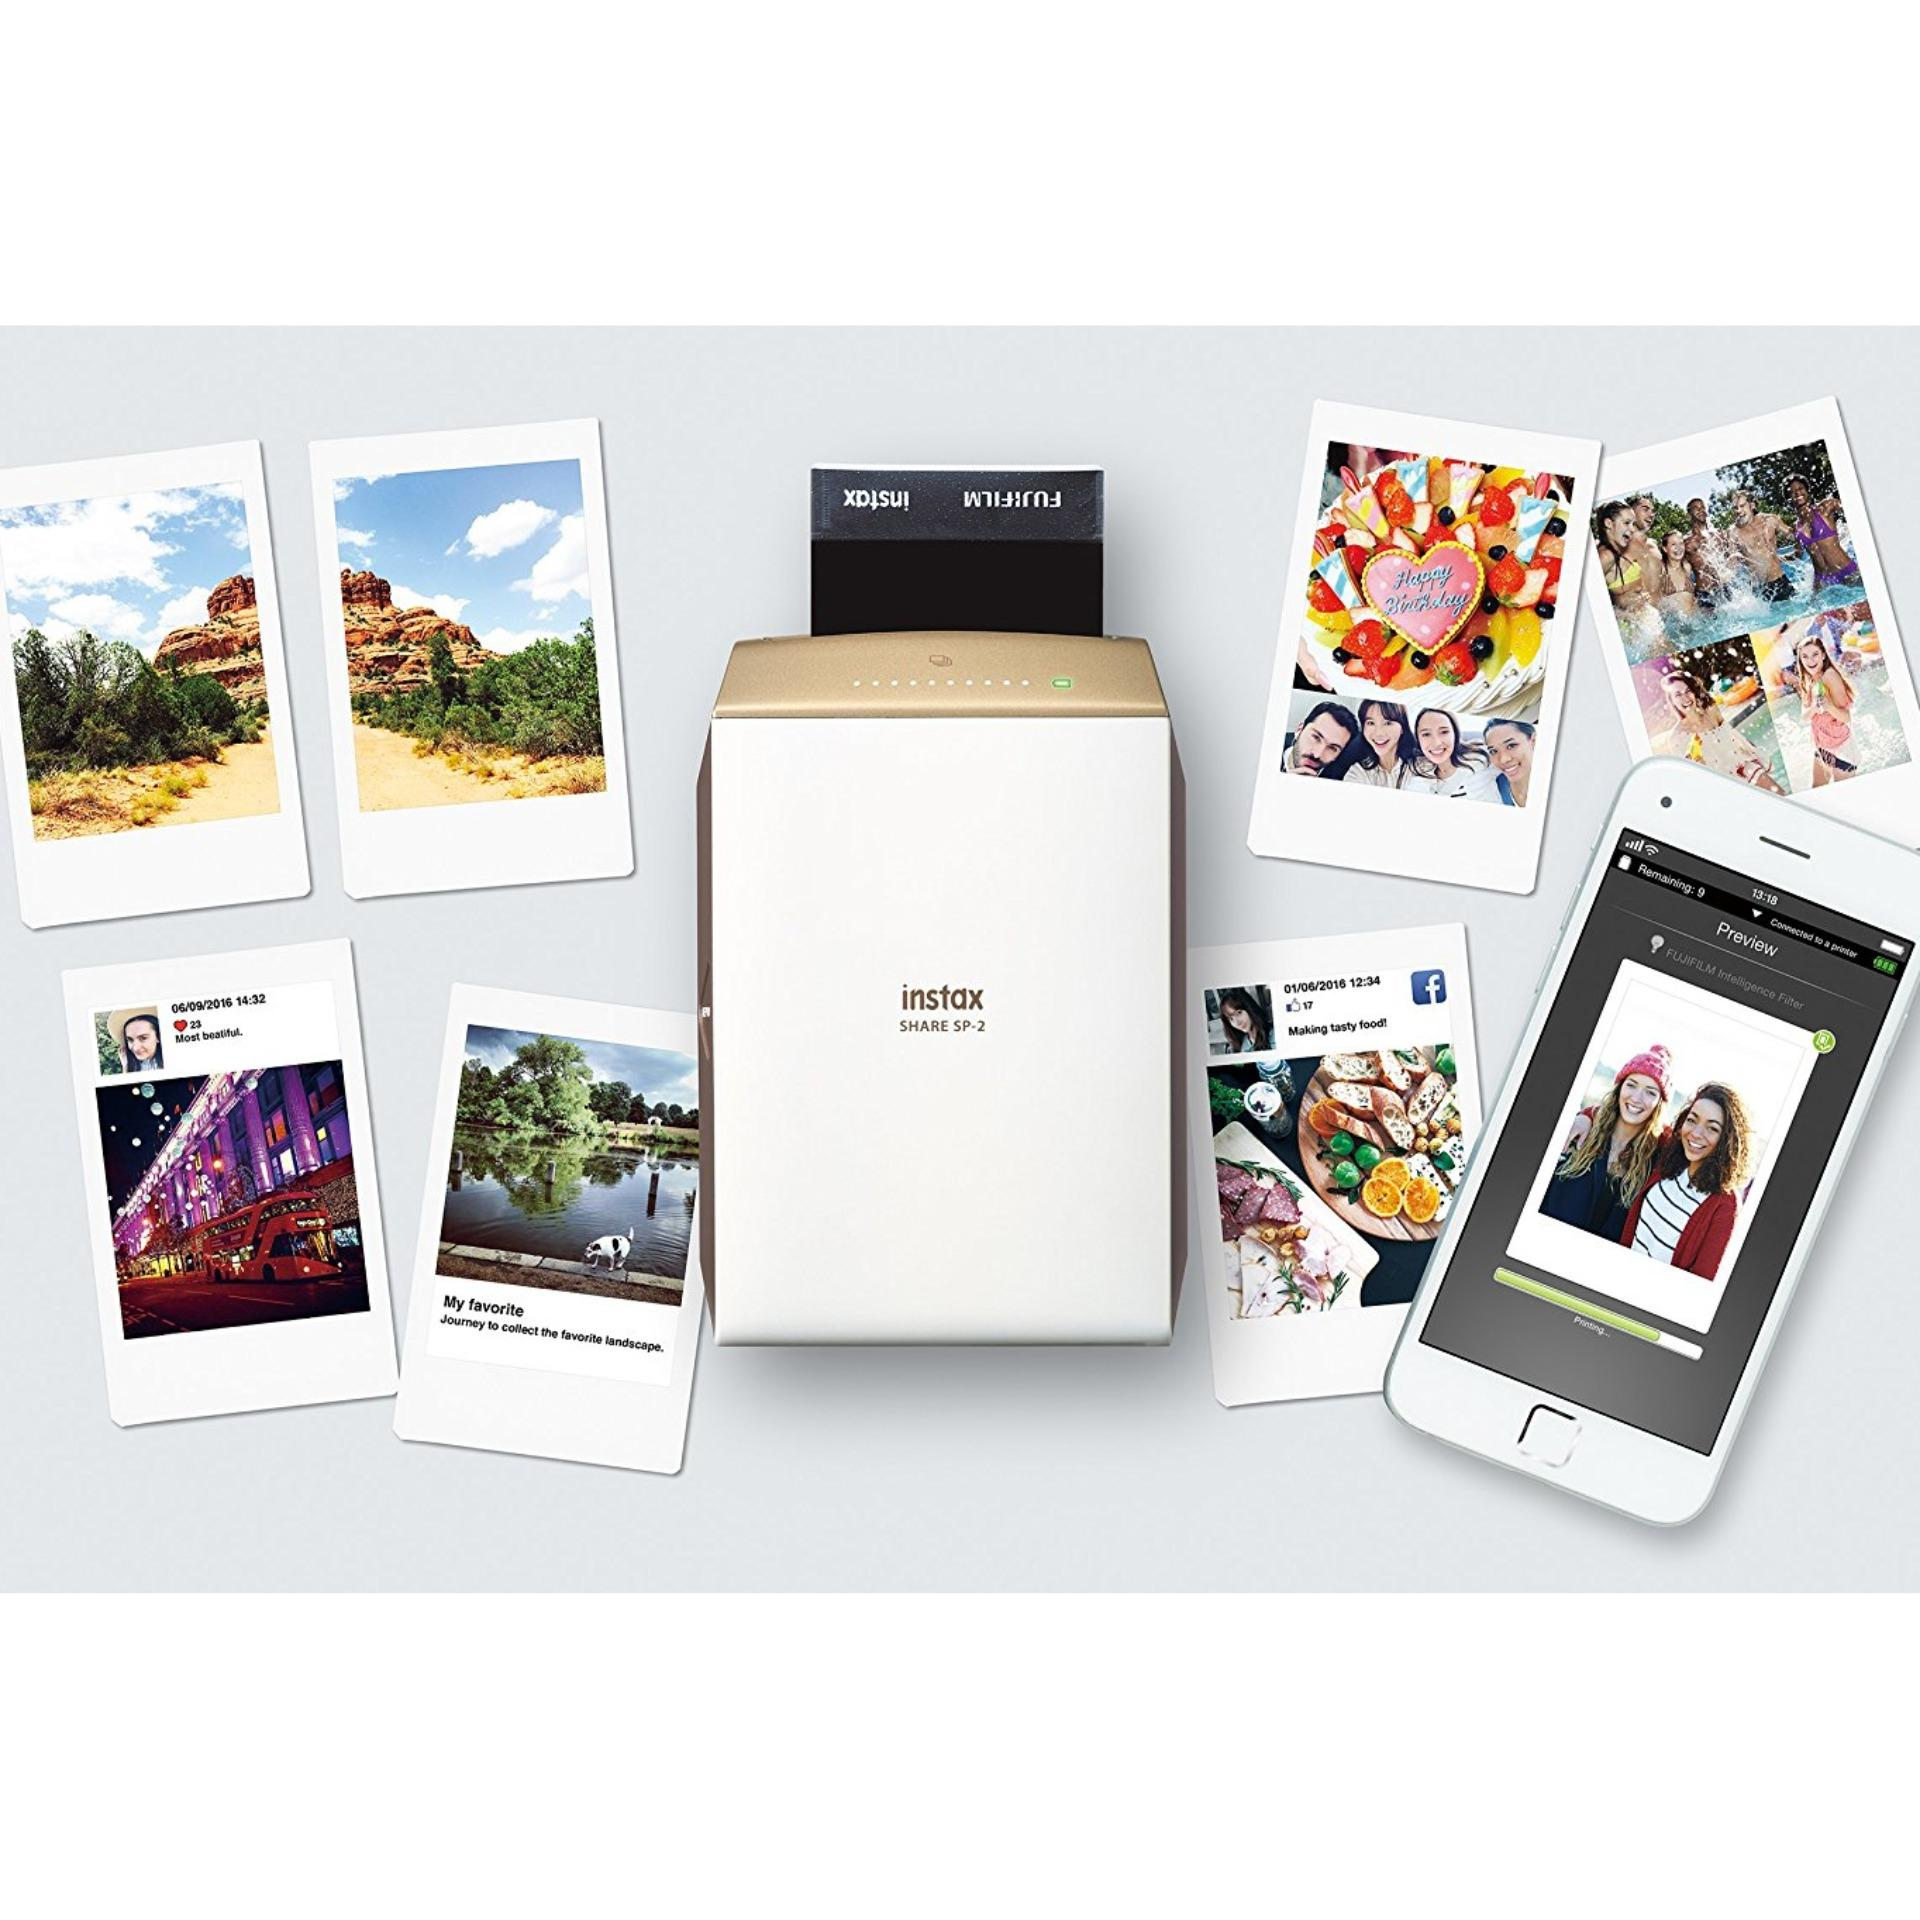 Fujifilm instax SHARE Smartphone Printer SP-2 with 1 pack of free film (assorted design)